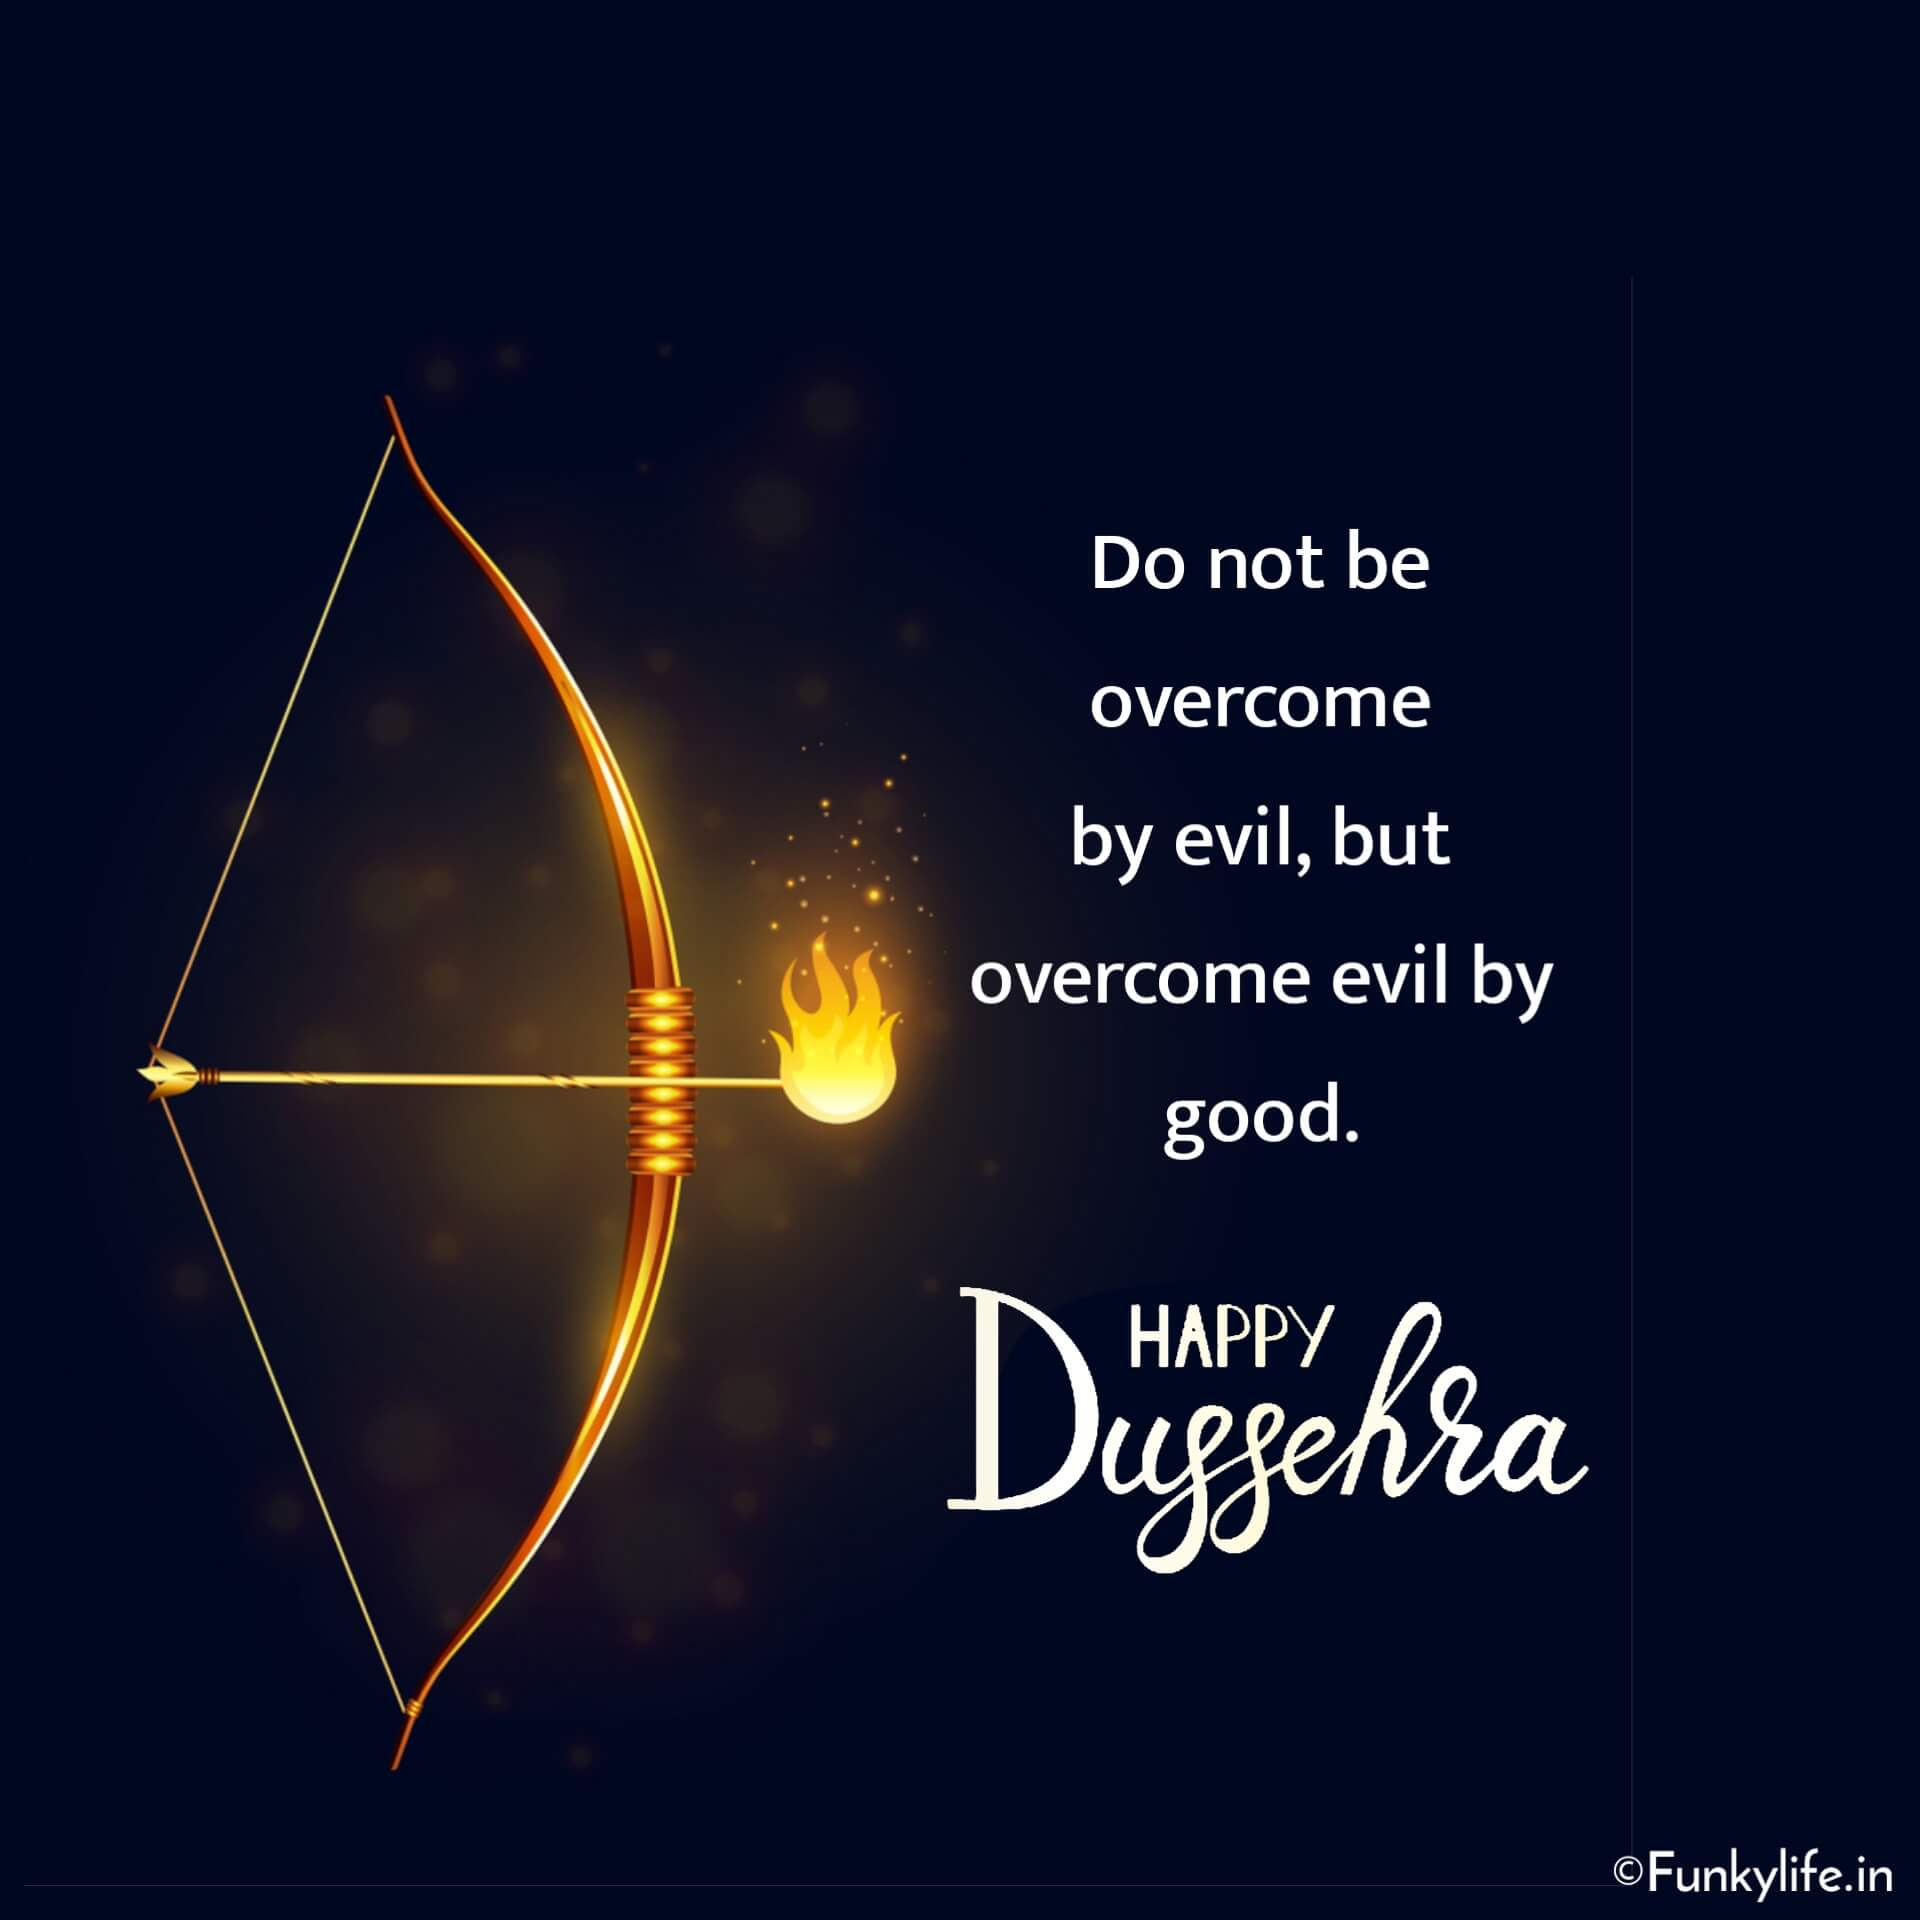 Dussehra Images with Quotes